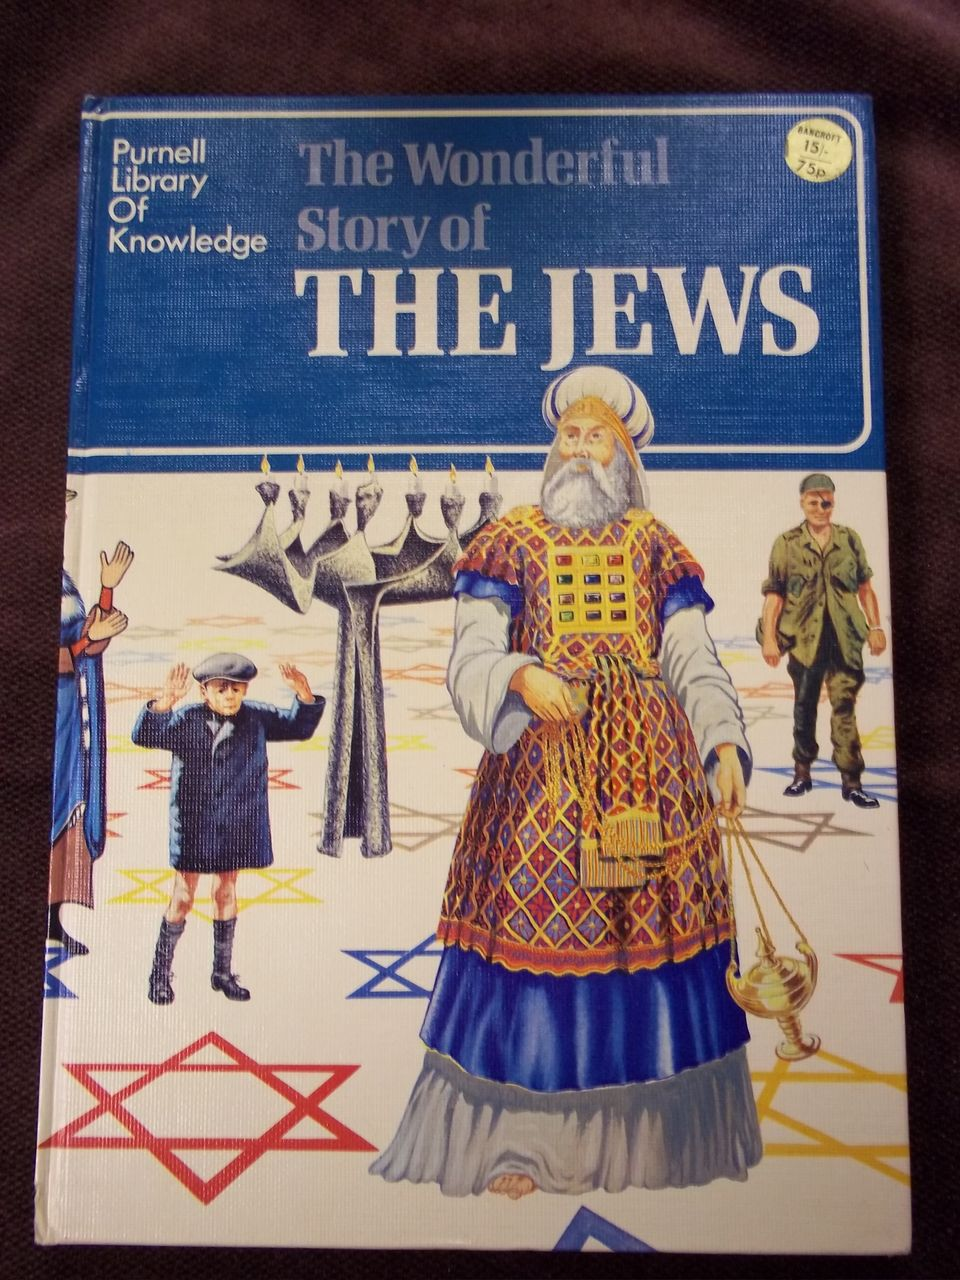 The Wonderful Story of the Jews: Purnell Library of Knowledge, First Edition, Purnell 1970